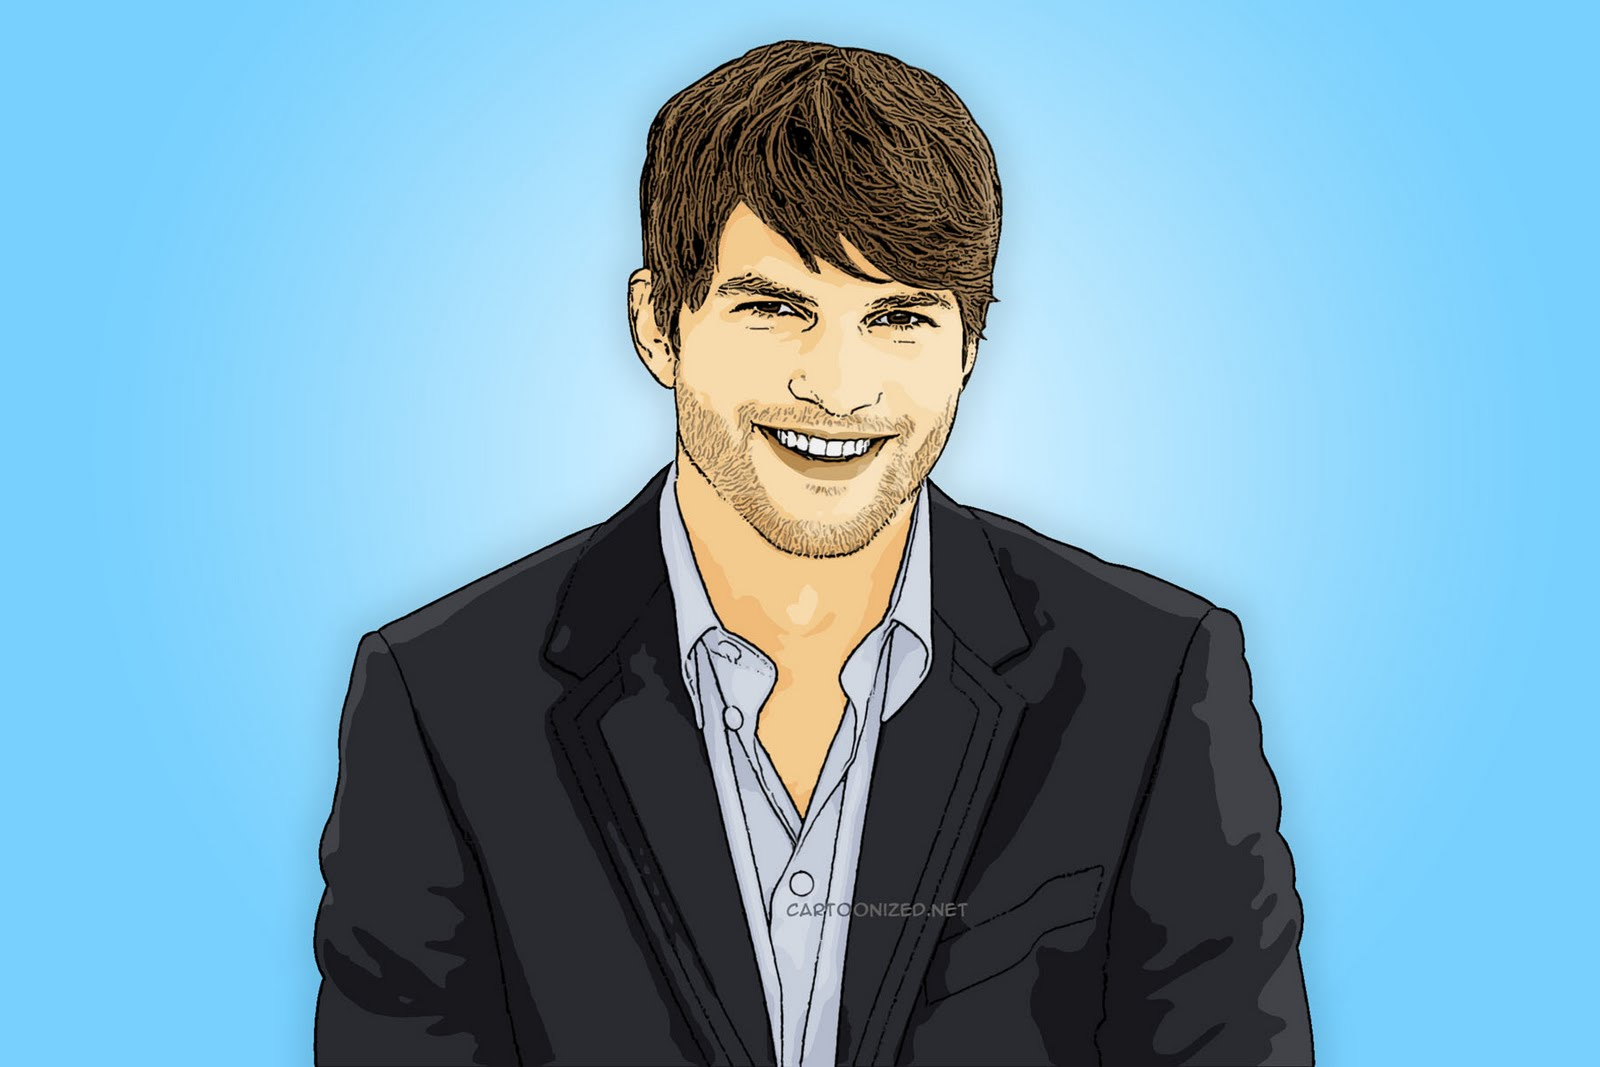 Ashton Kutcher Cartoon